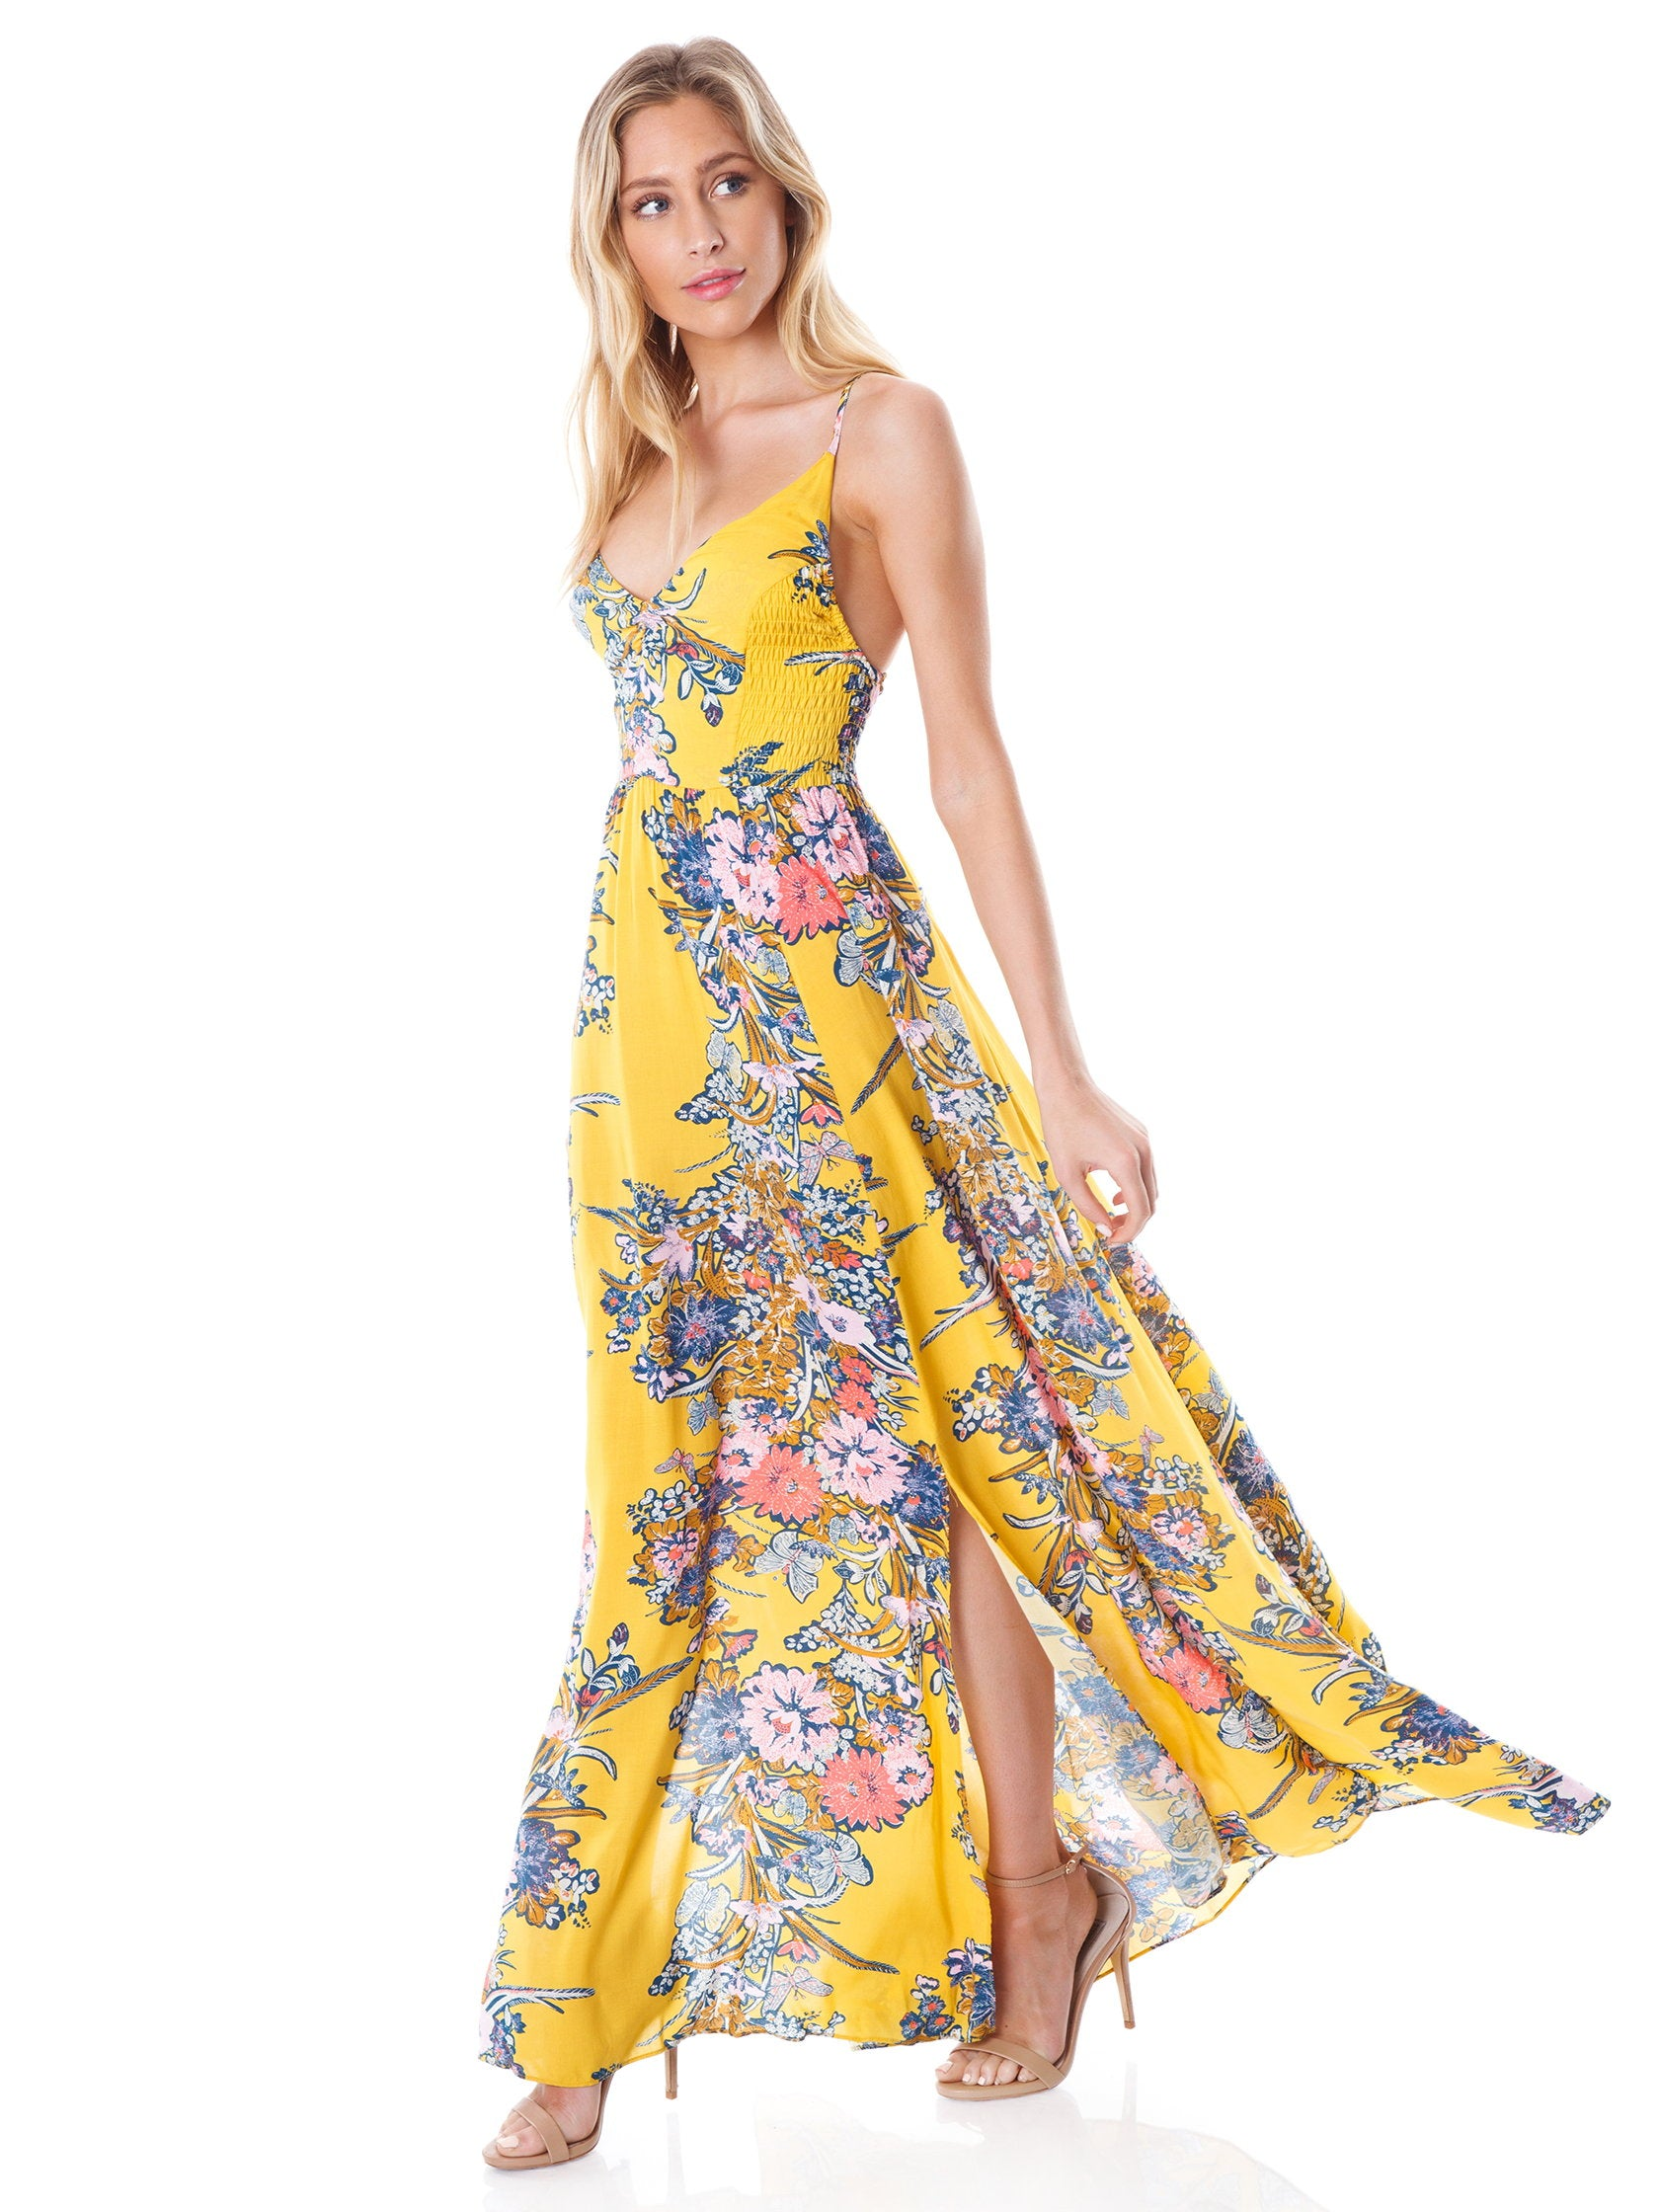 ef19b64e093 Woman wearing a dress rental from Free People called Through The Vine  Printed Maxi Dress